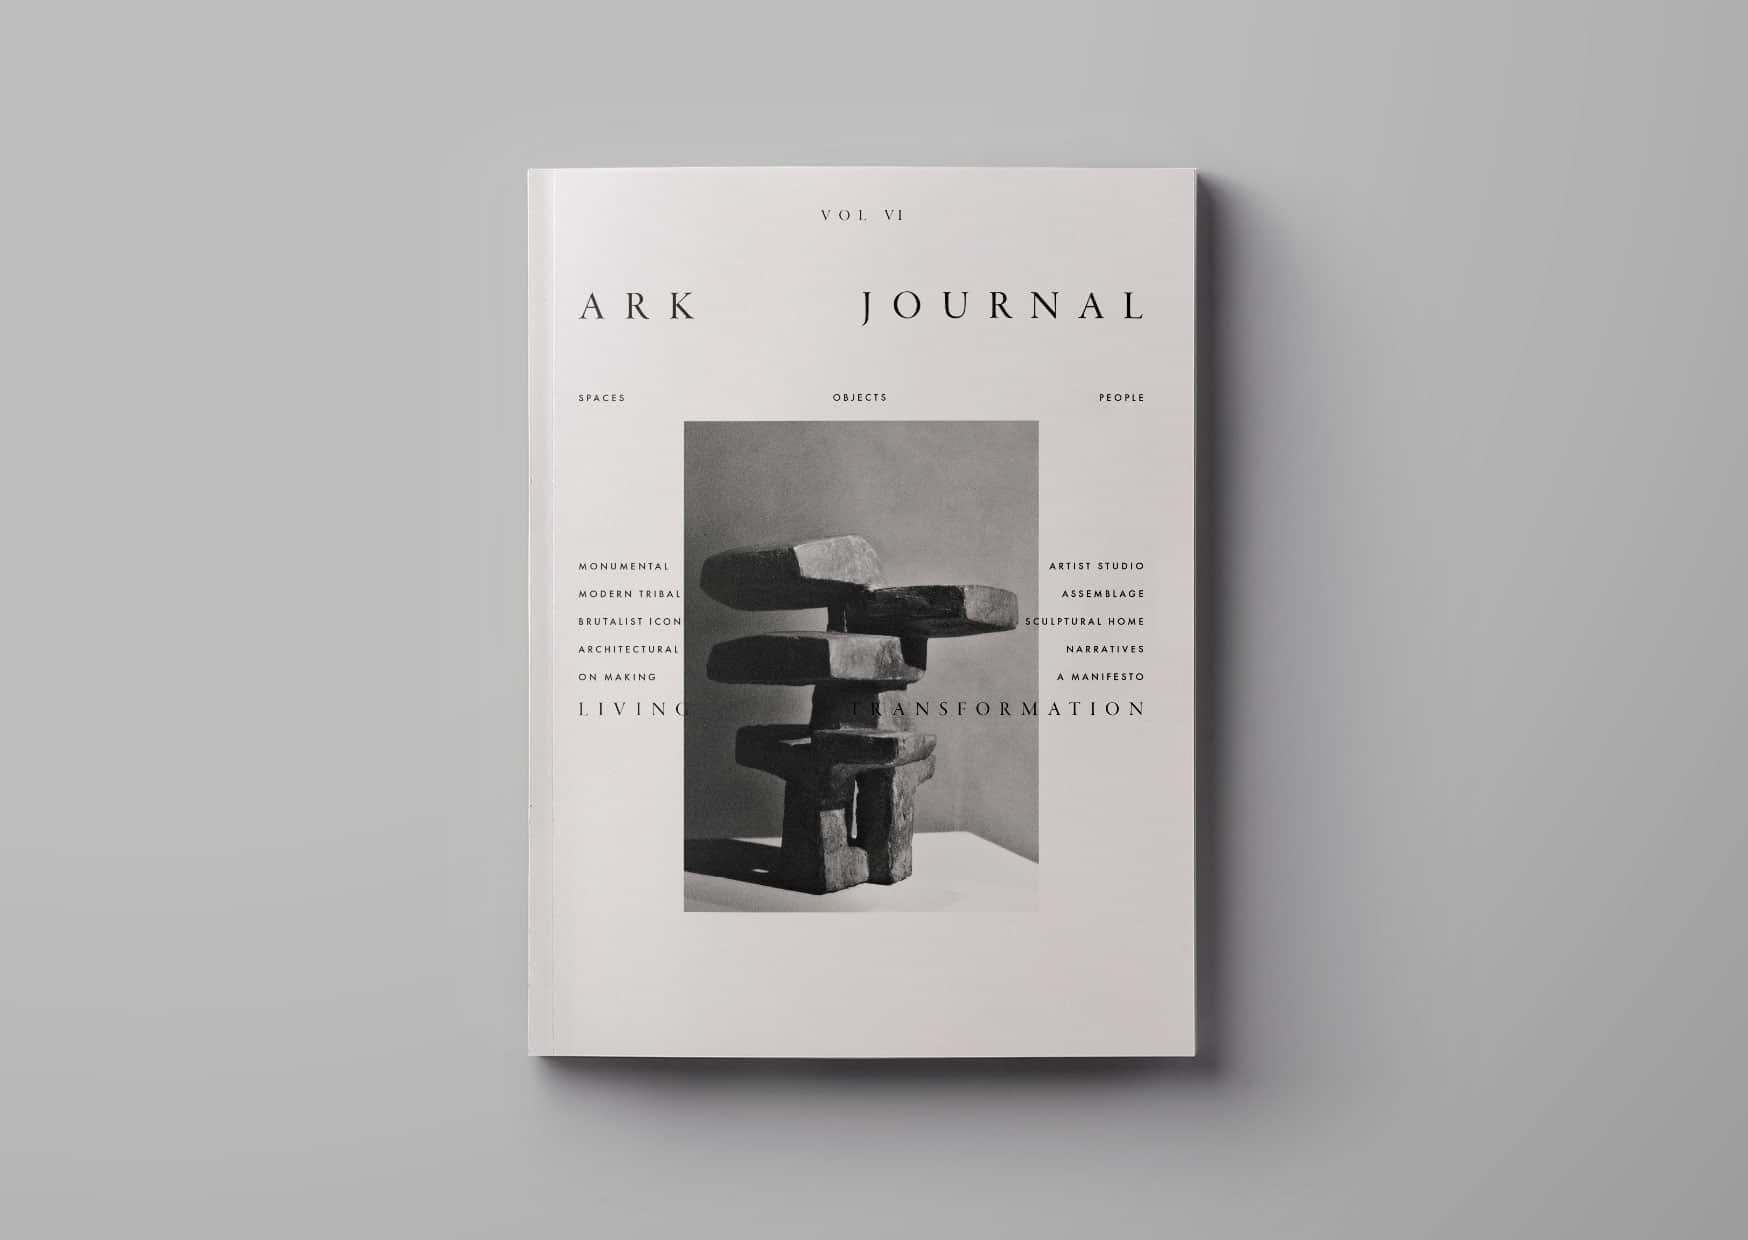 ark06_cover_preview_02